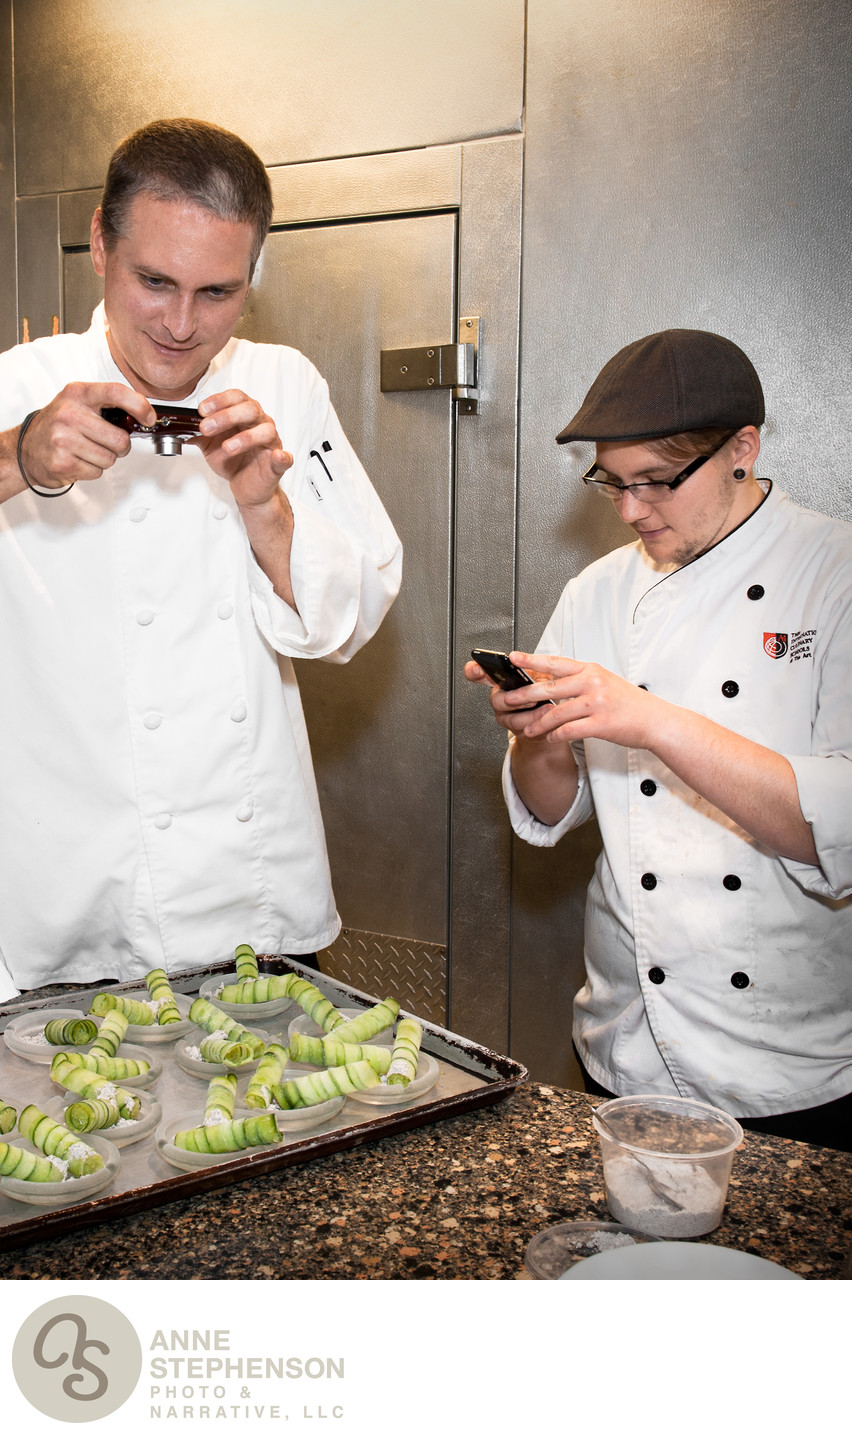 Chefs capture a moment with cell phones